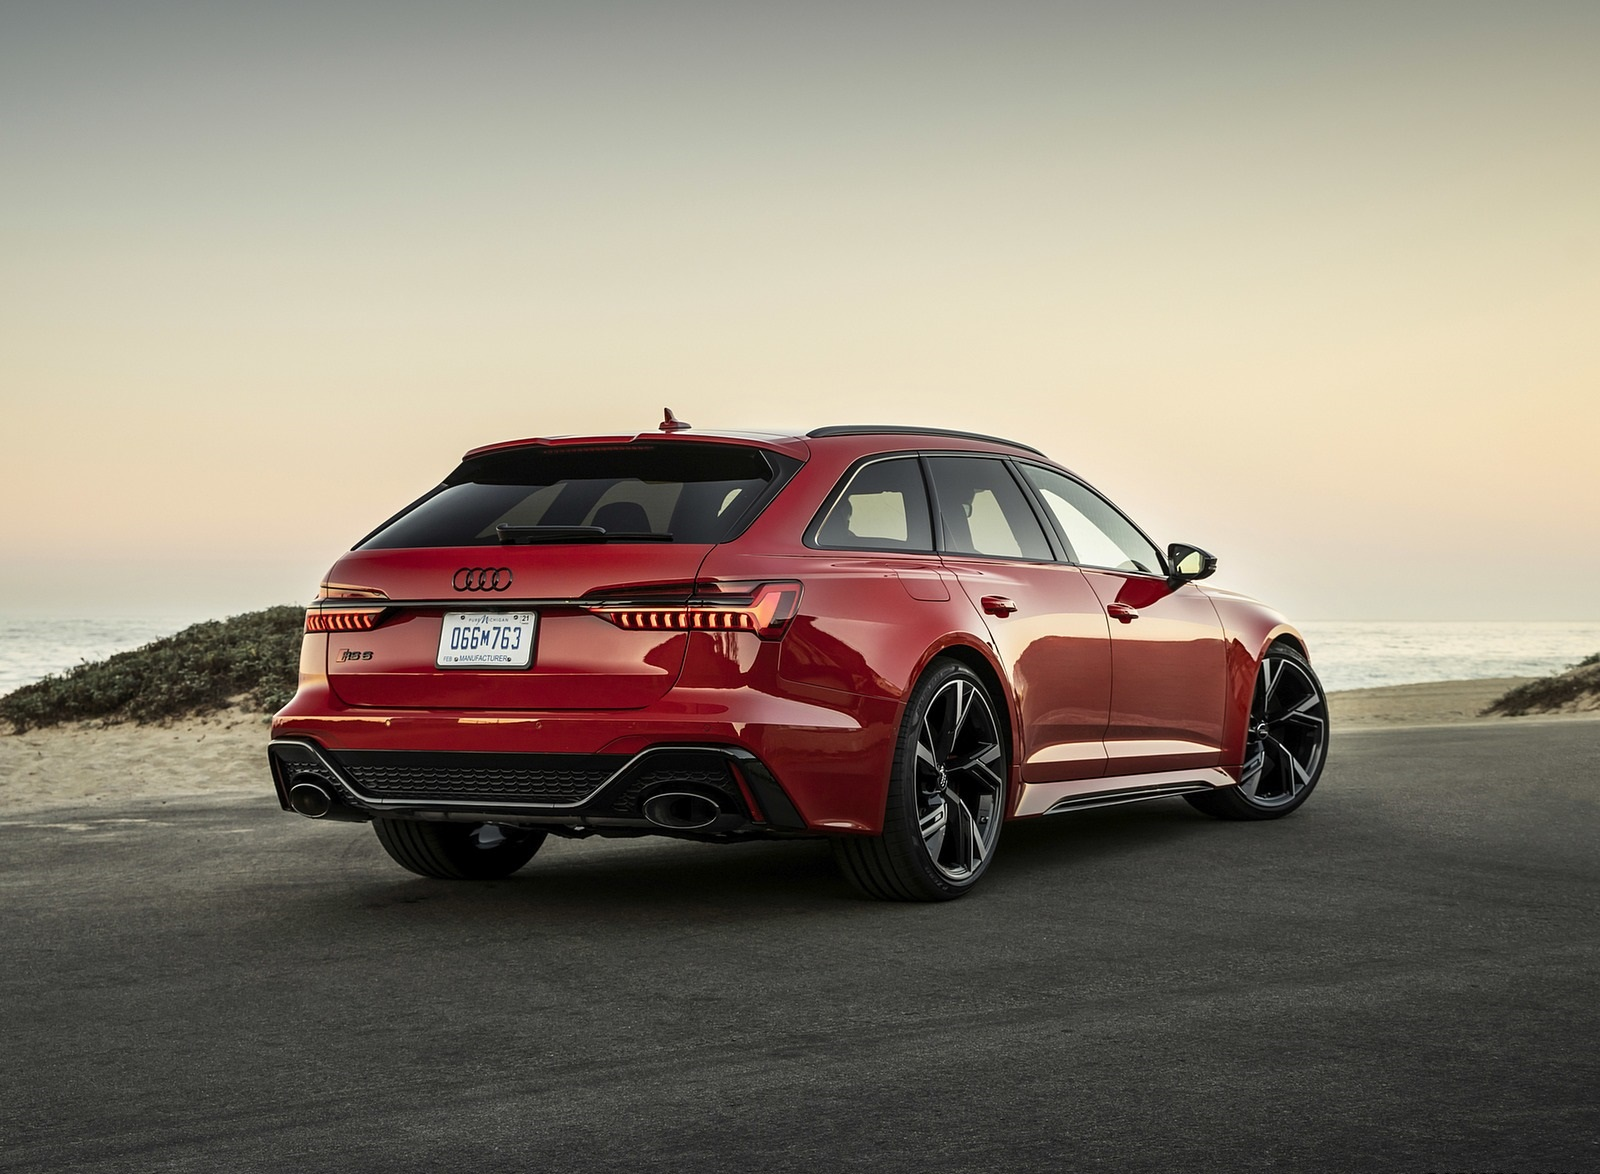 2020 Audi RS 6 Avant (Color: Tango Red) Rear Three-Quarter Wallpapers (9)